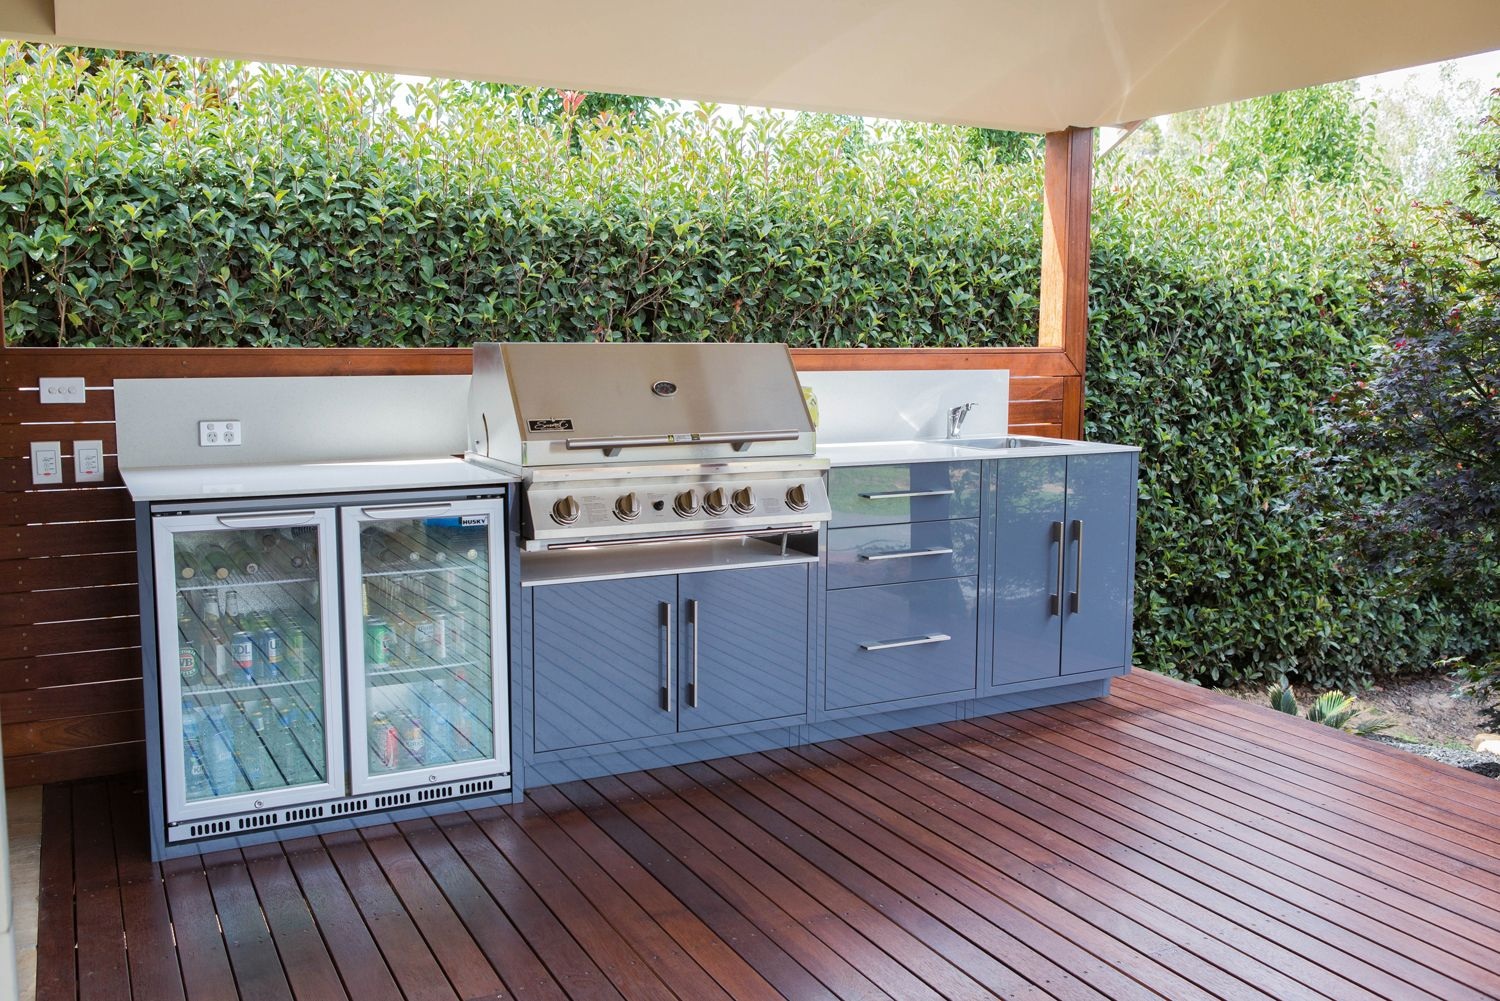 A look at outdoor kitchen solutions | Terra Abode OD Kitchen ...